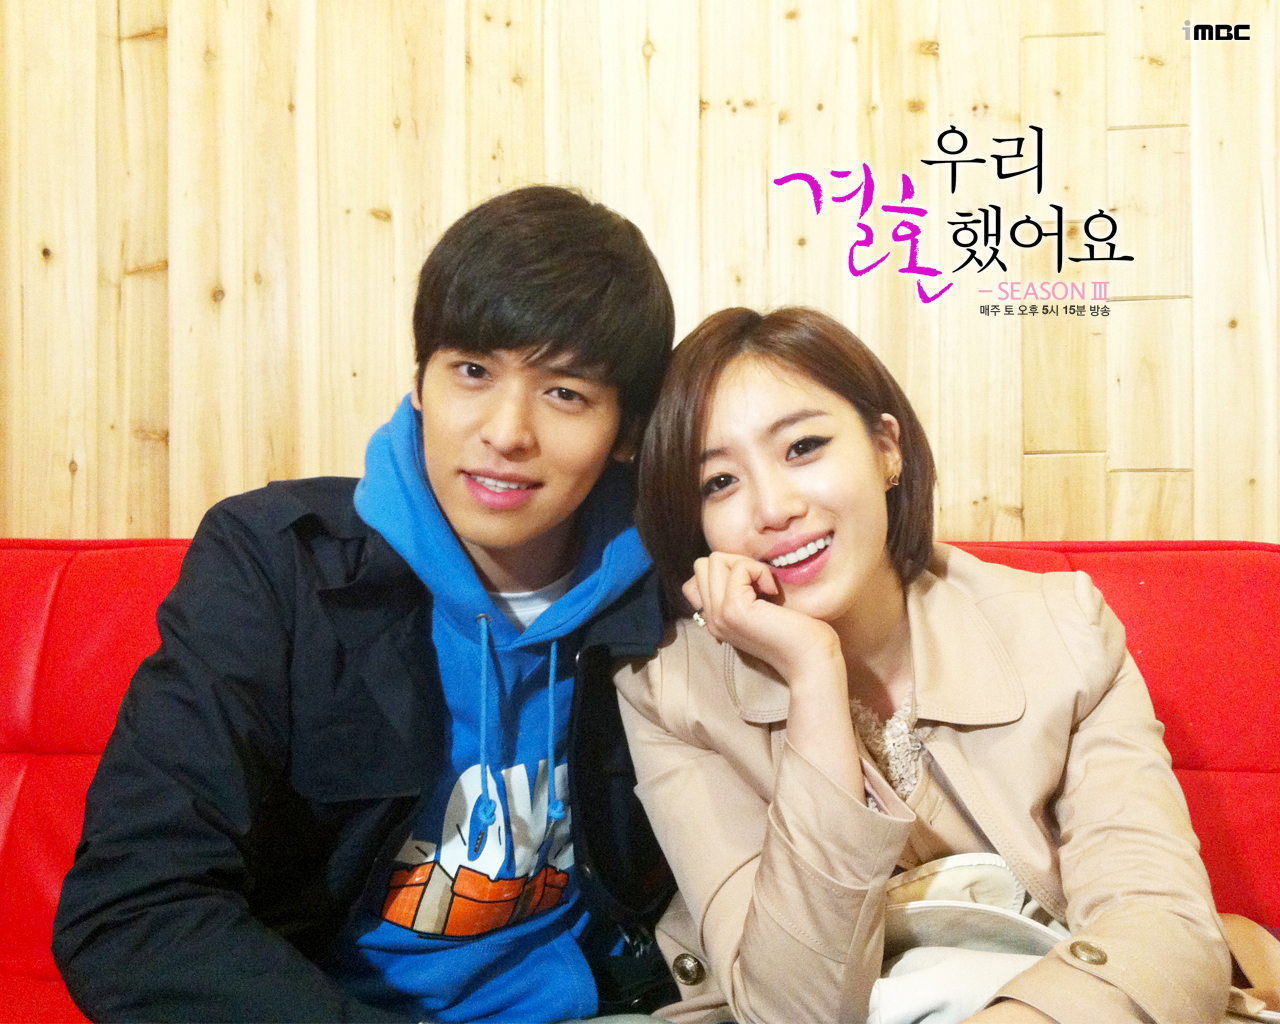 http://4.bp.blogspot.com/-DInouOSiQ2w/TnKbITOHMPI/AAAAAAAAMcI/IIggzsdm0_Y/s1600/eunjung+jangwoo+we+got+married+%25282%2529.jpg